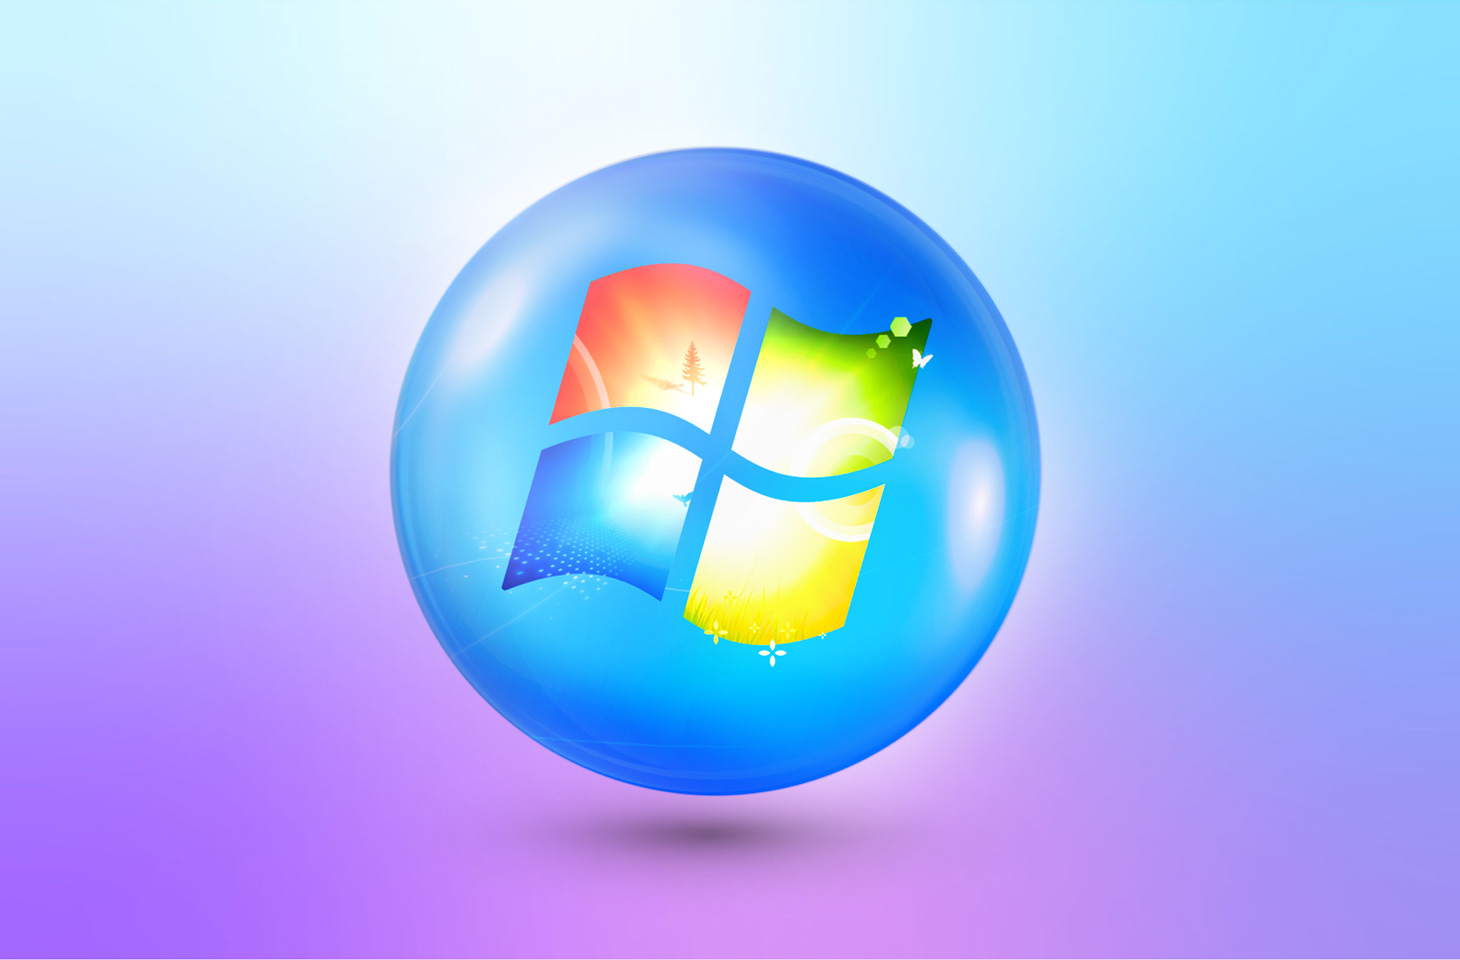 RIP Windows 7. What now?